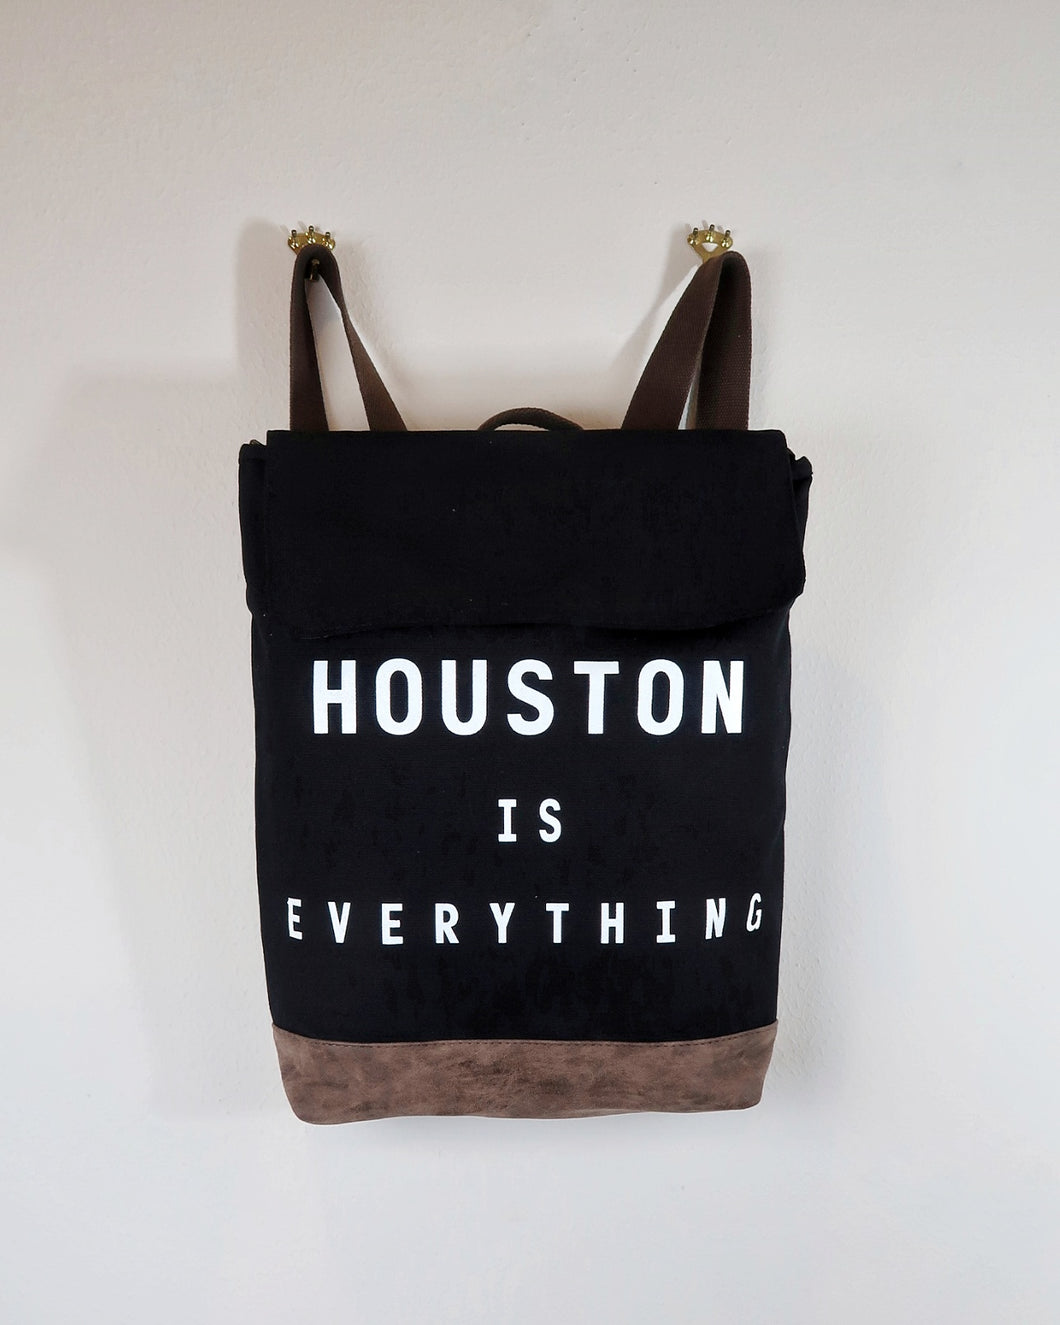 The Houston is Everything Rucksack